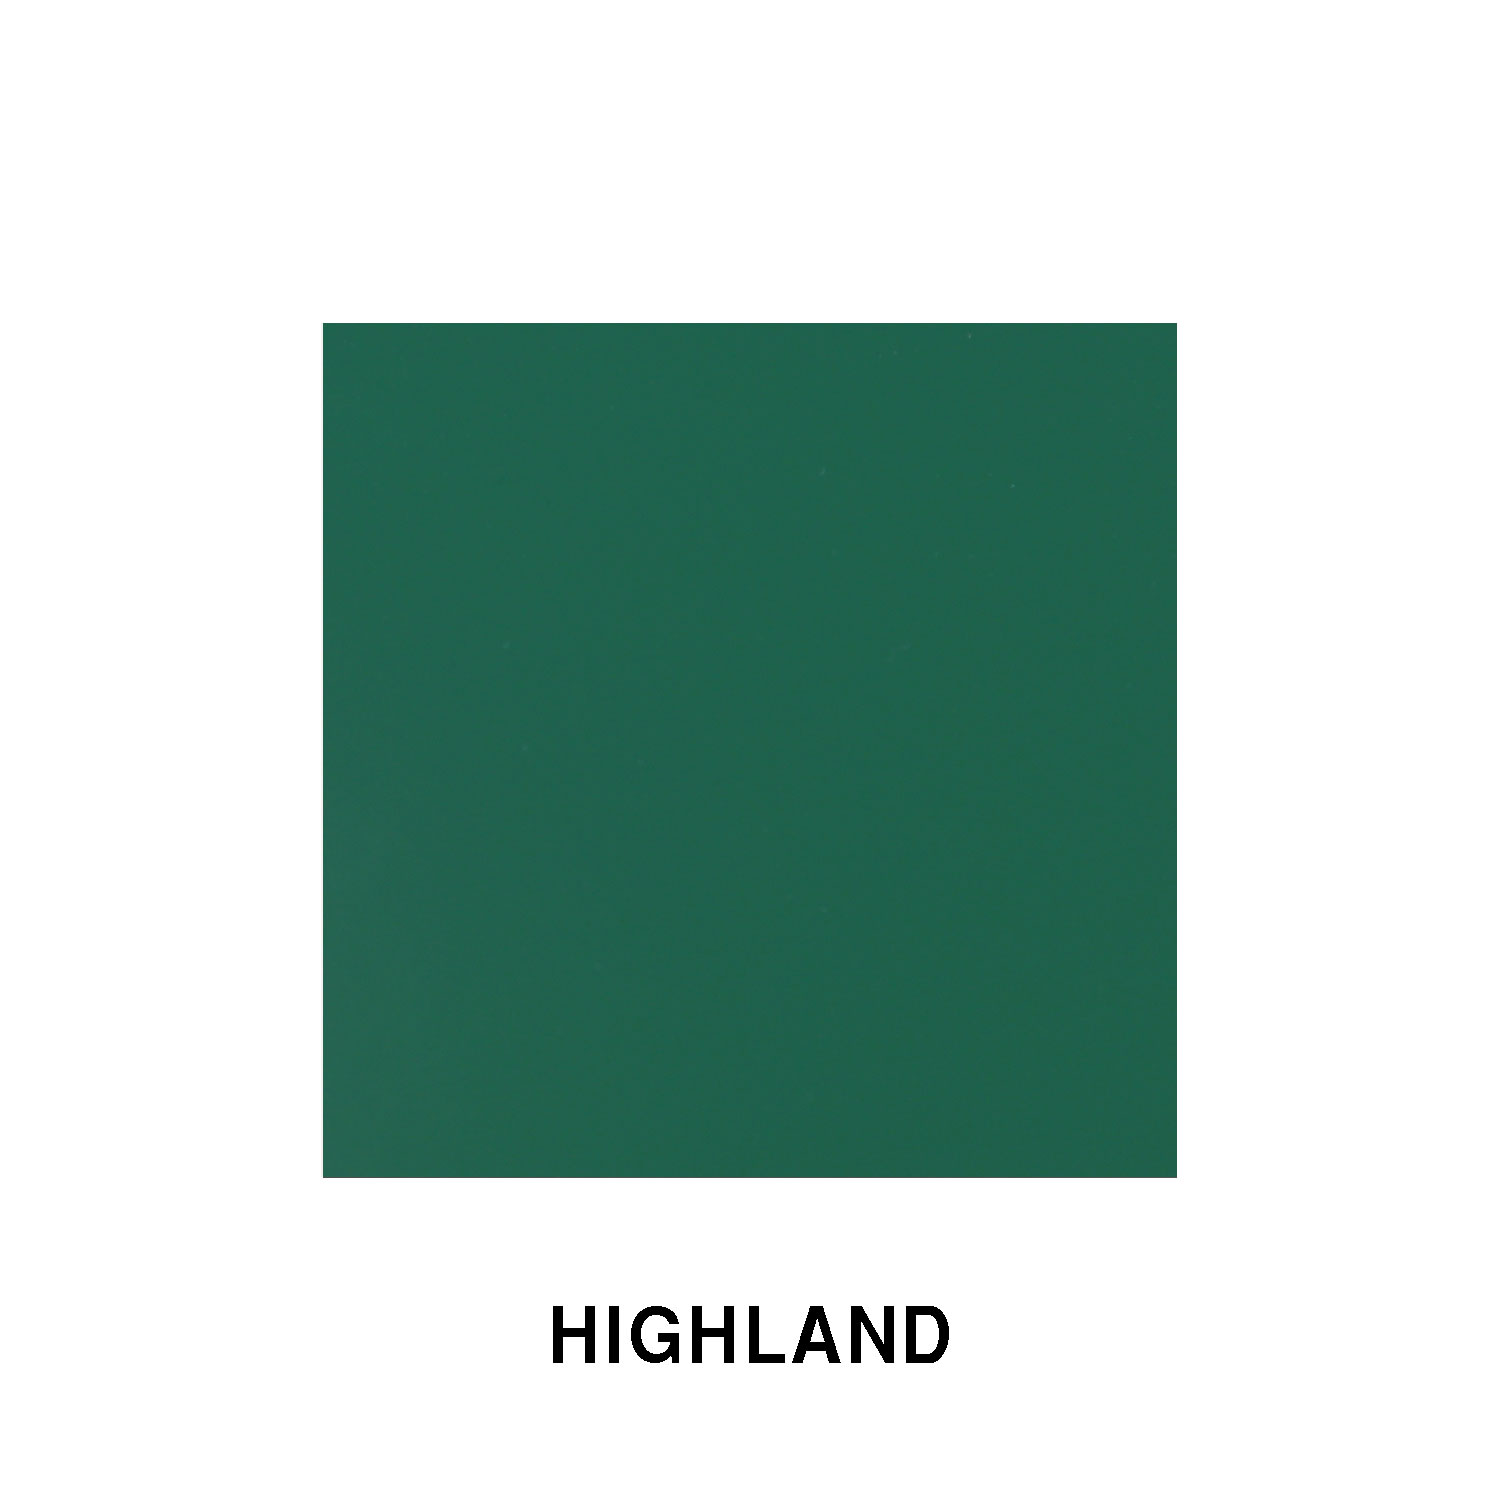 Highland Green Fiberglass Finish